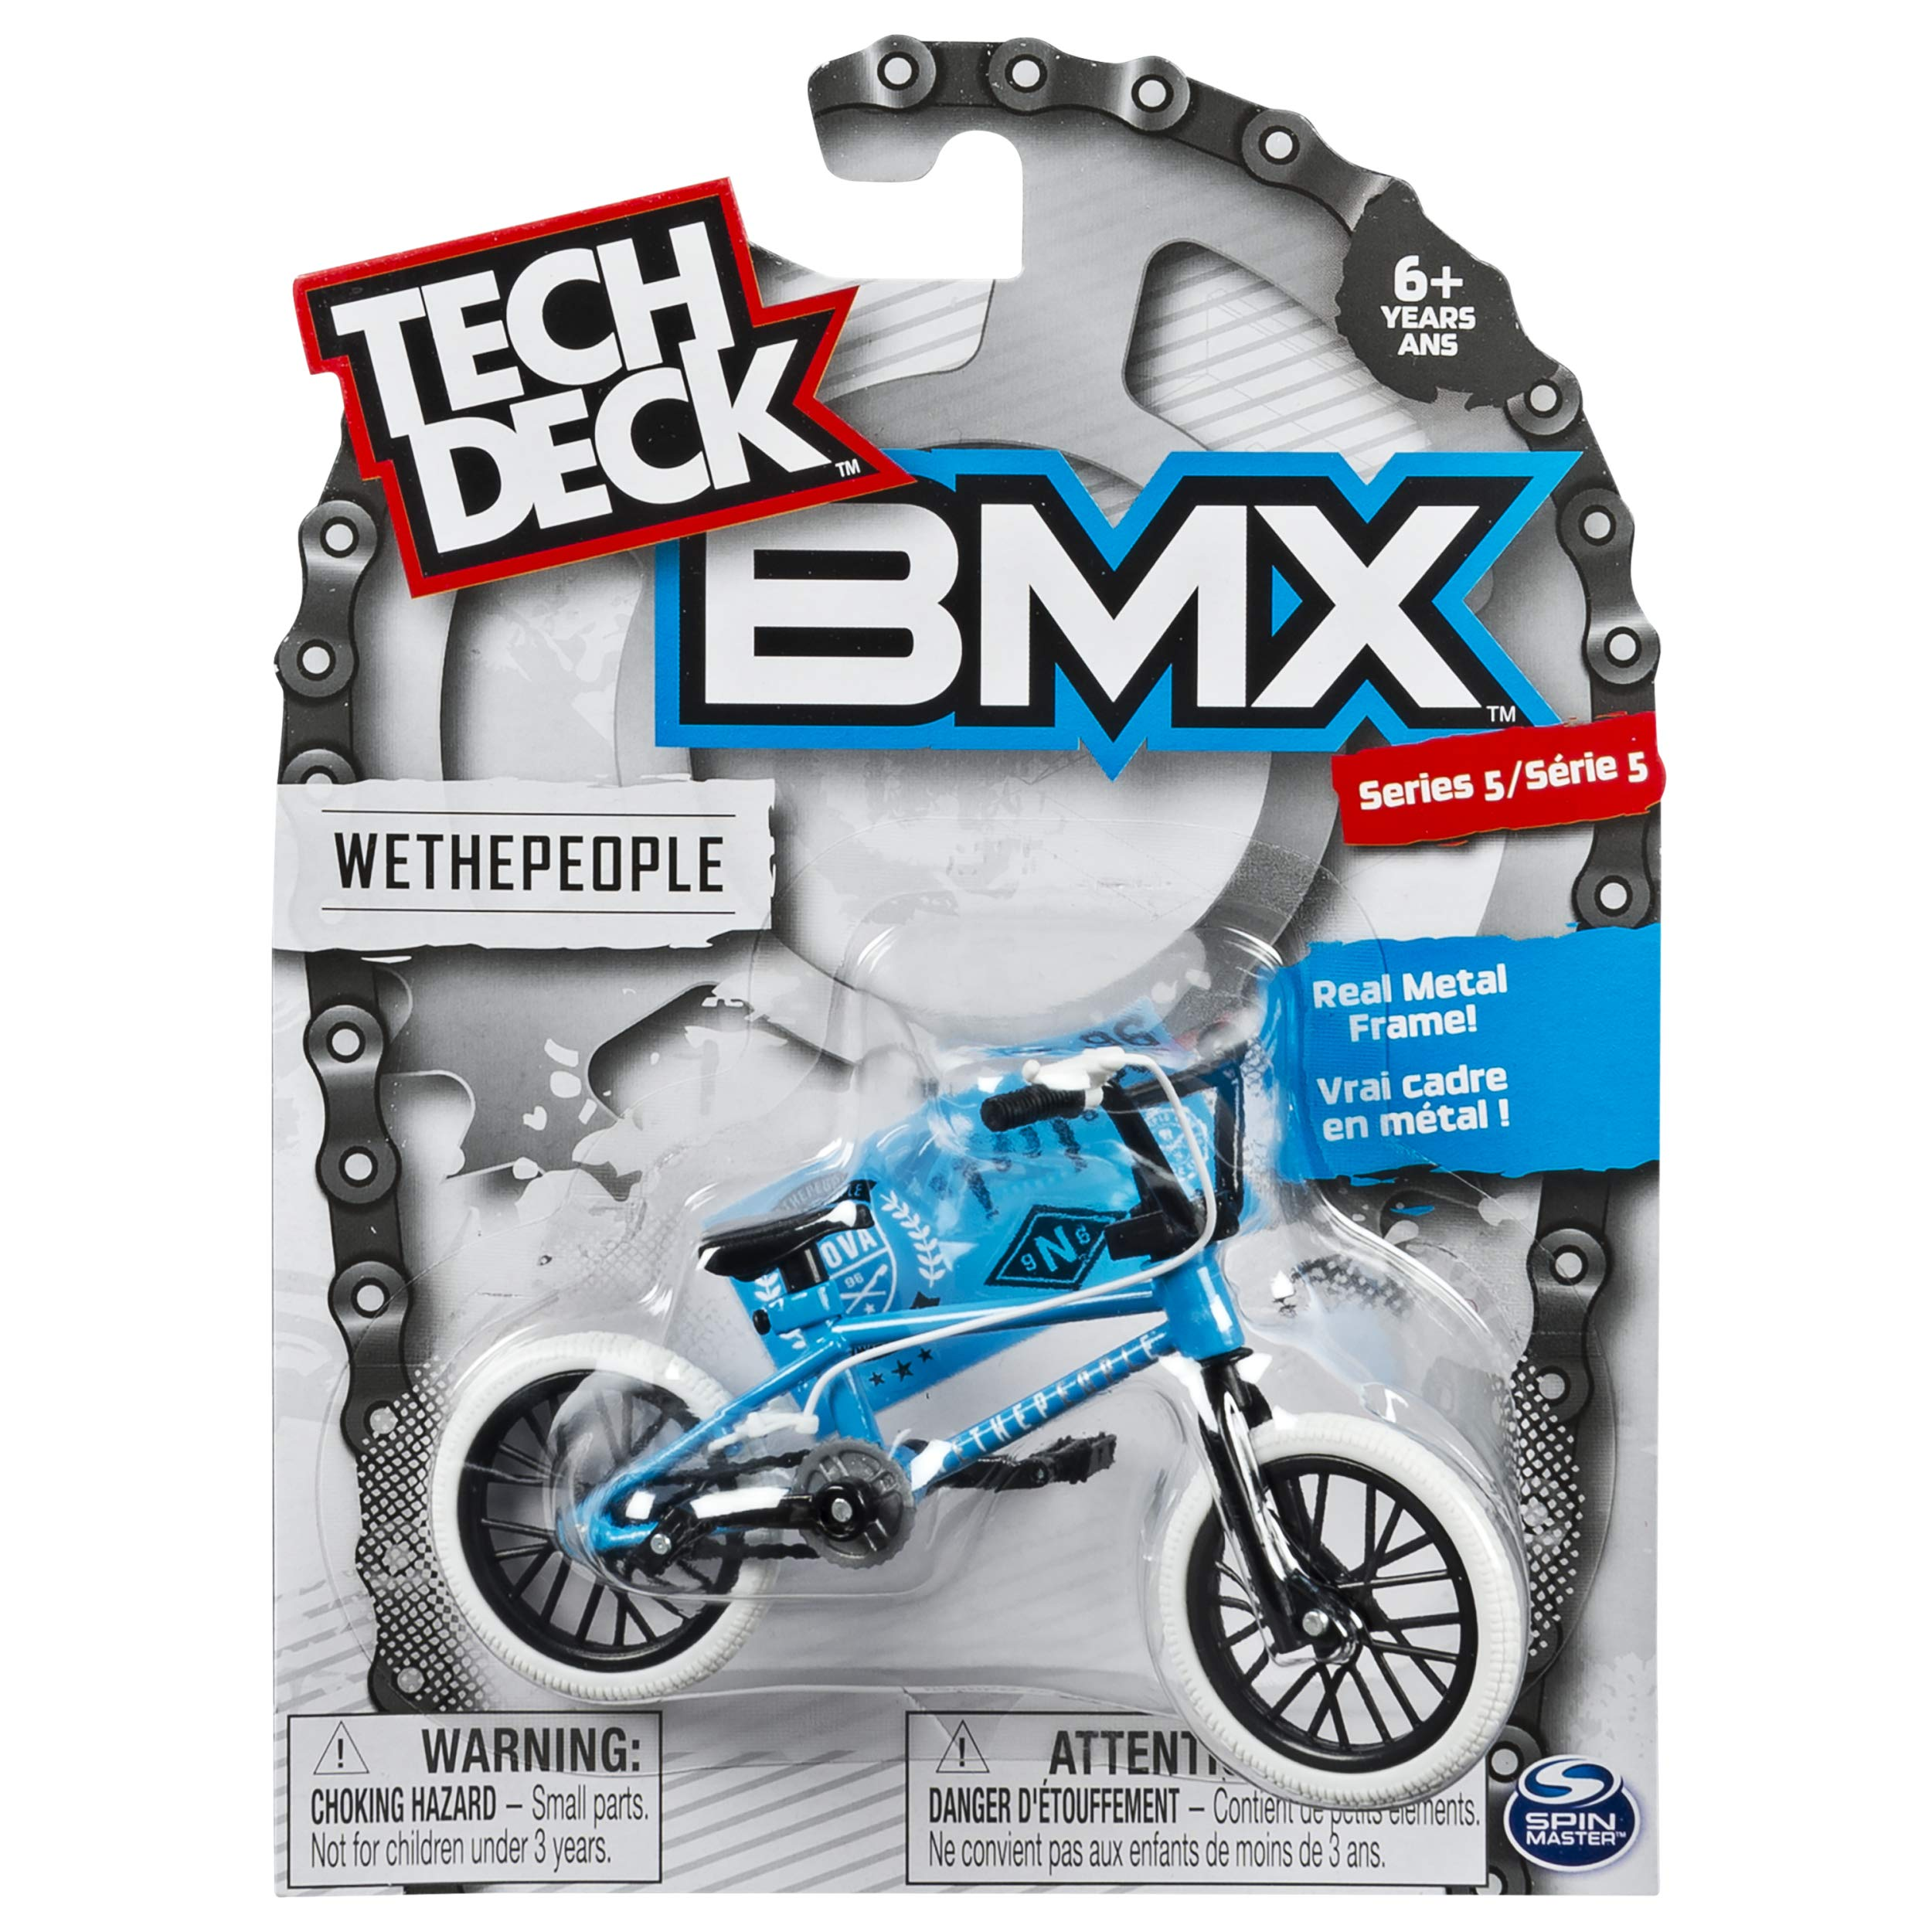 Tech Deck - BMX Finger Bike - WeThePeople - White/Blue - Series 5 by Tech Deck (Image #1)